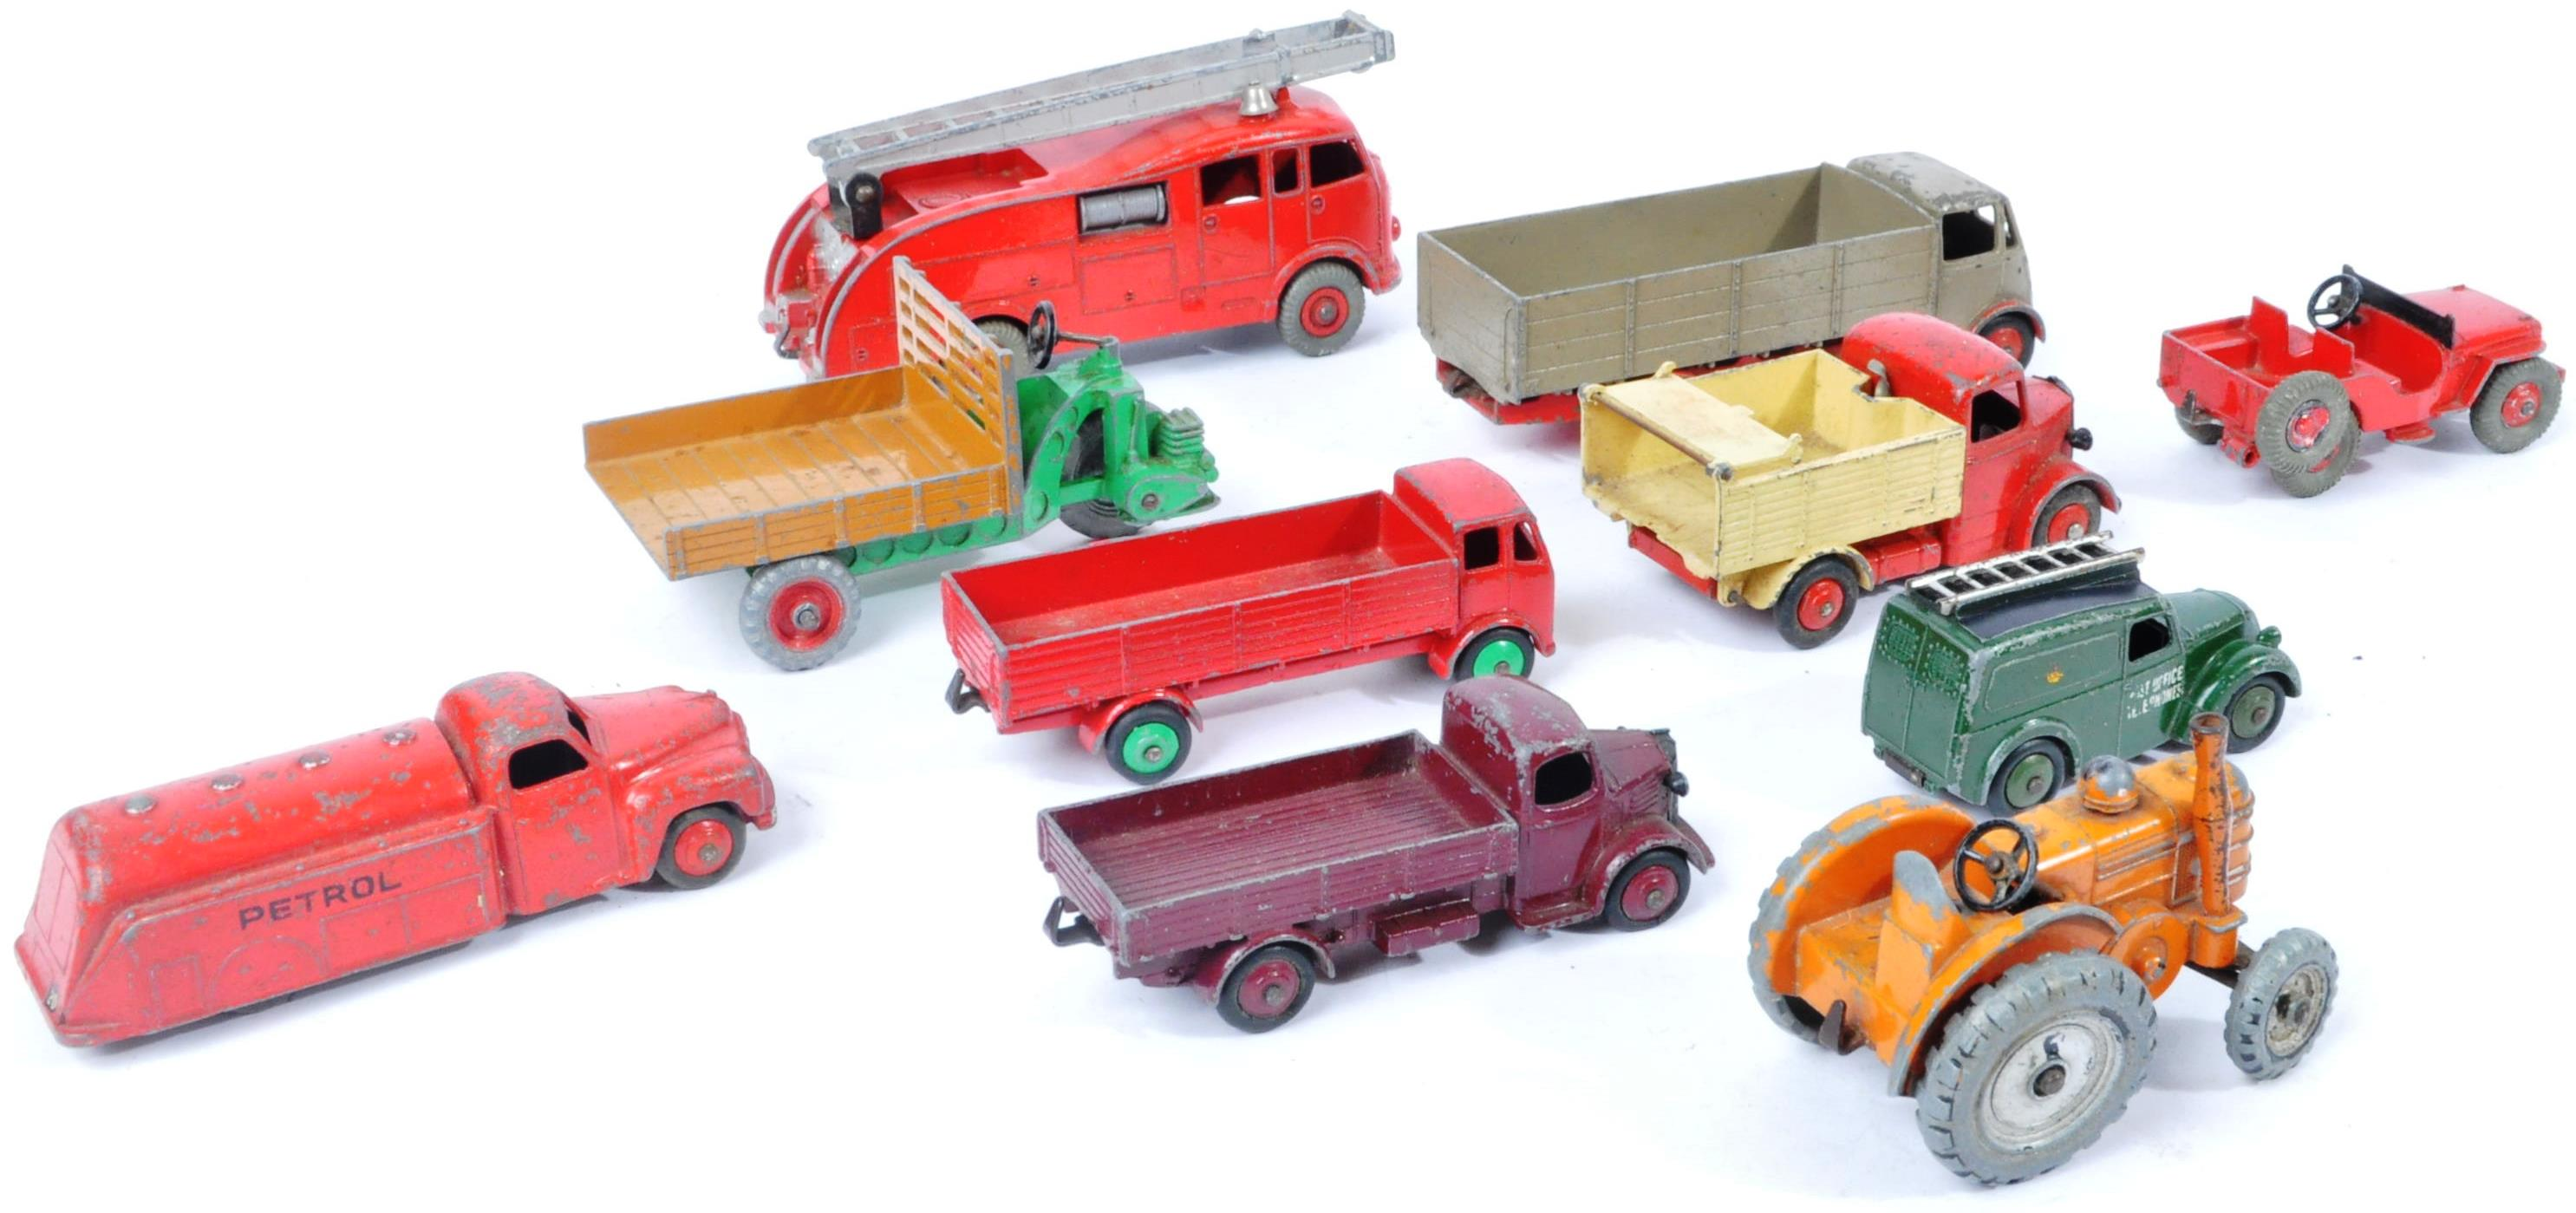 COLLECTION OF X10 VINTAGE DINKY TOYS DIECAST MODEL TRUCKS - Image 13 of 14